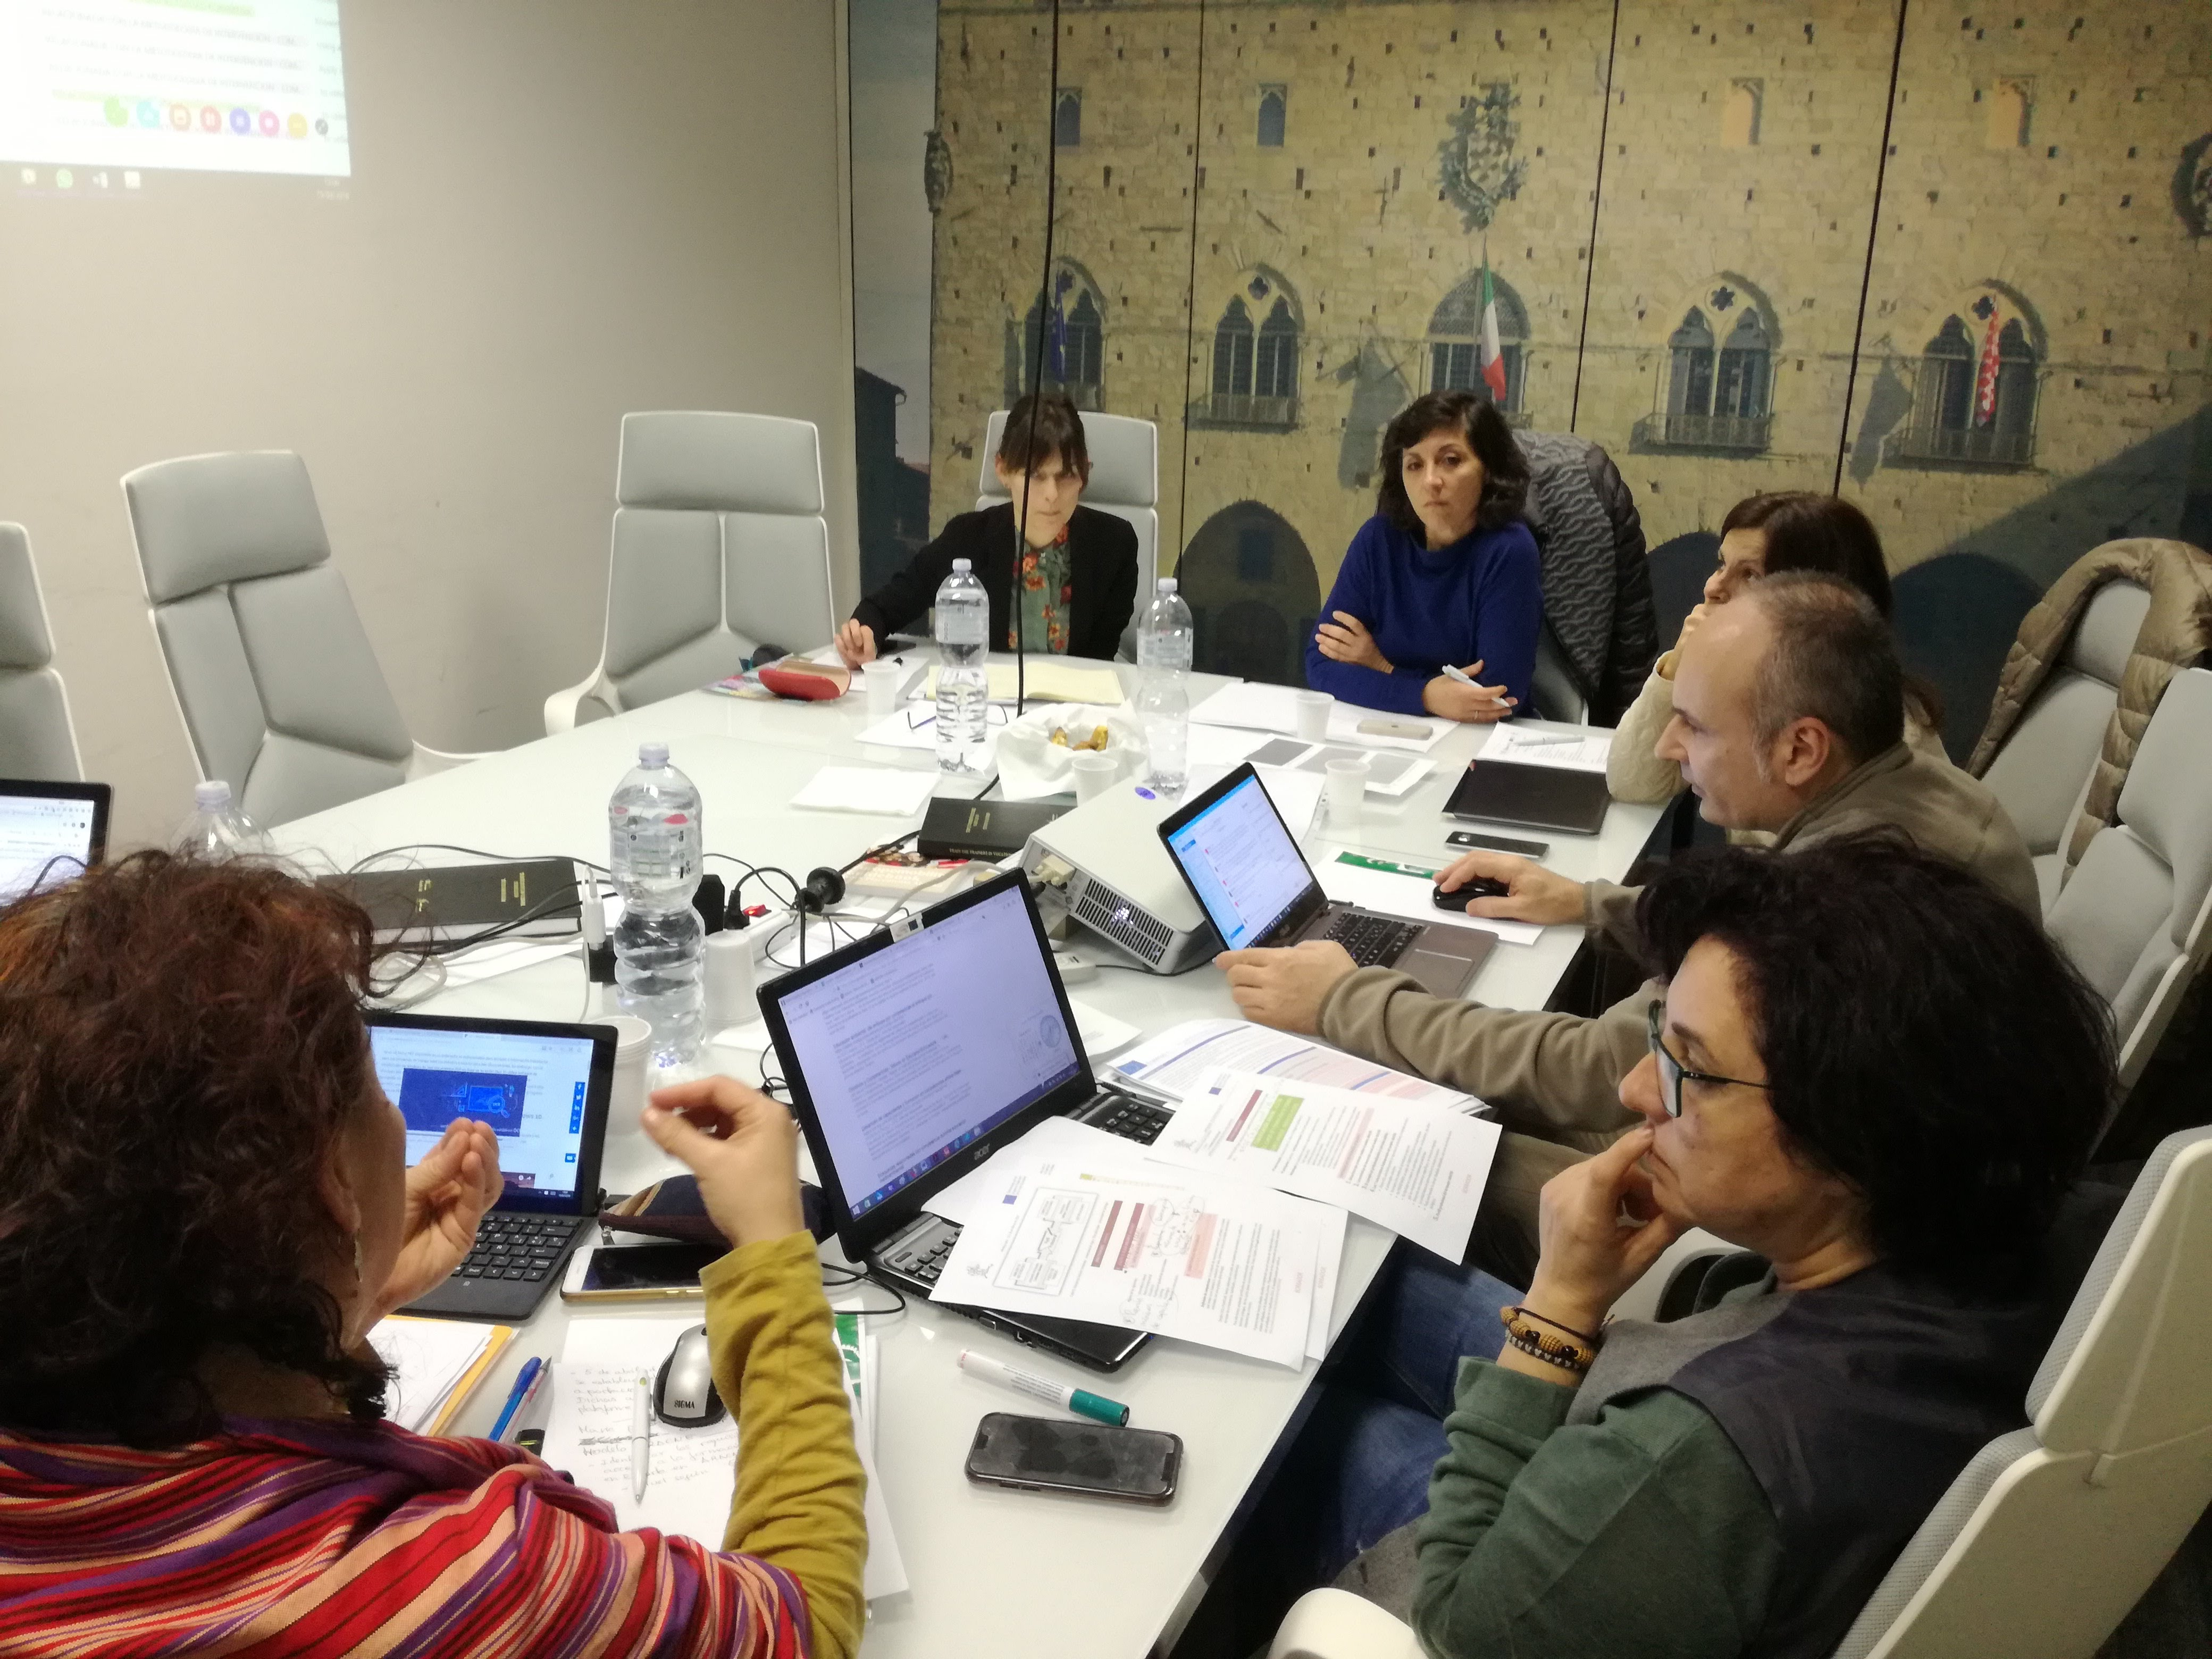 Giovanni Crisonà participated in the ARACNE+ project meeting the last 15th and 16th of March